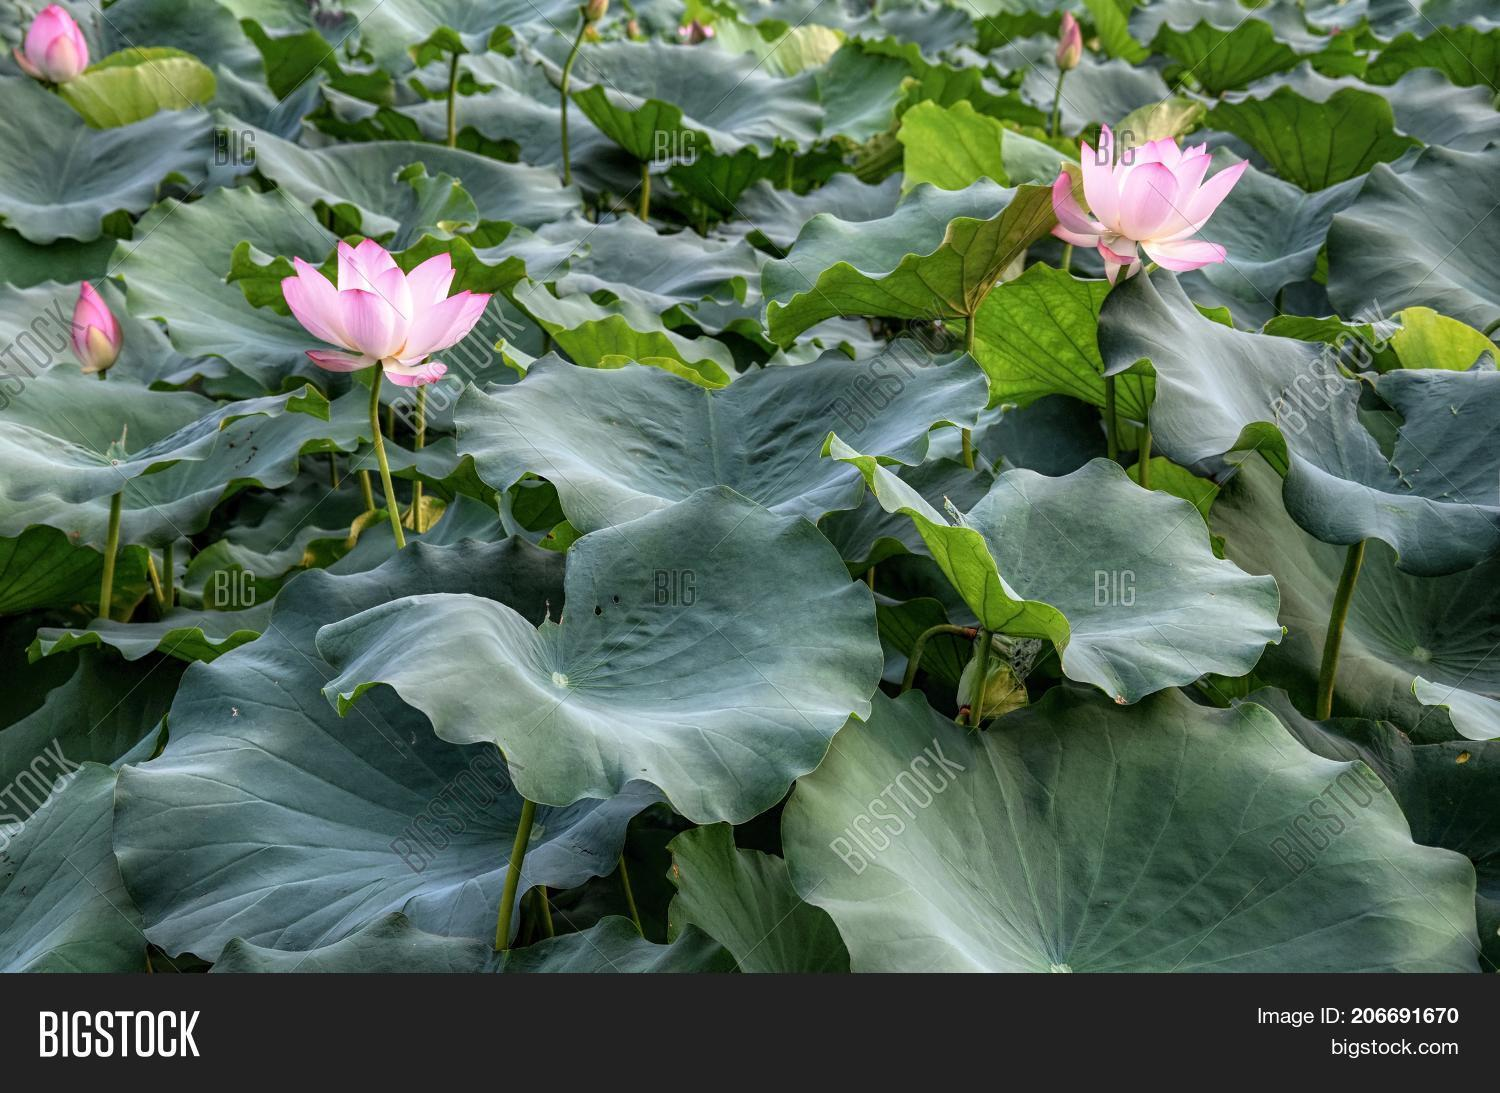 Lotus Flower Symbol Image Photo Free Trial Bigstock